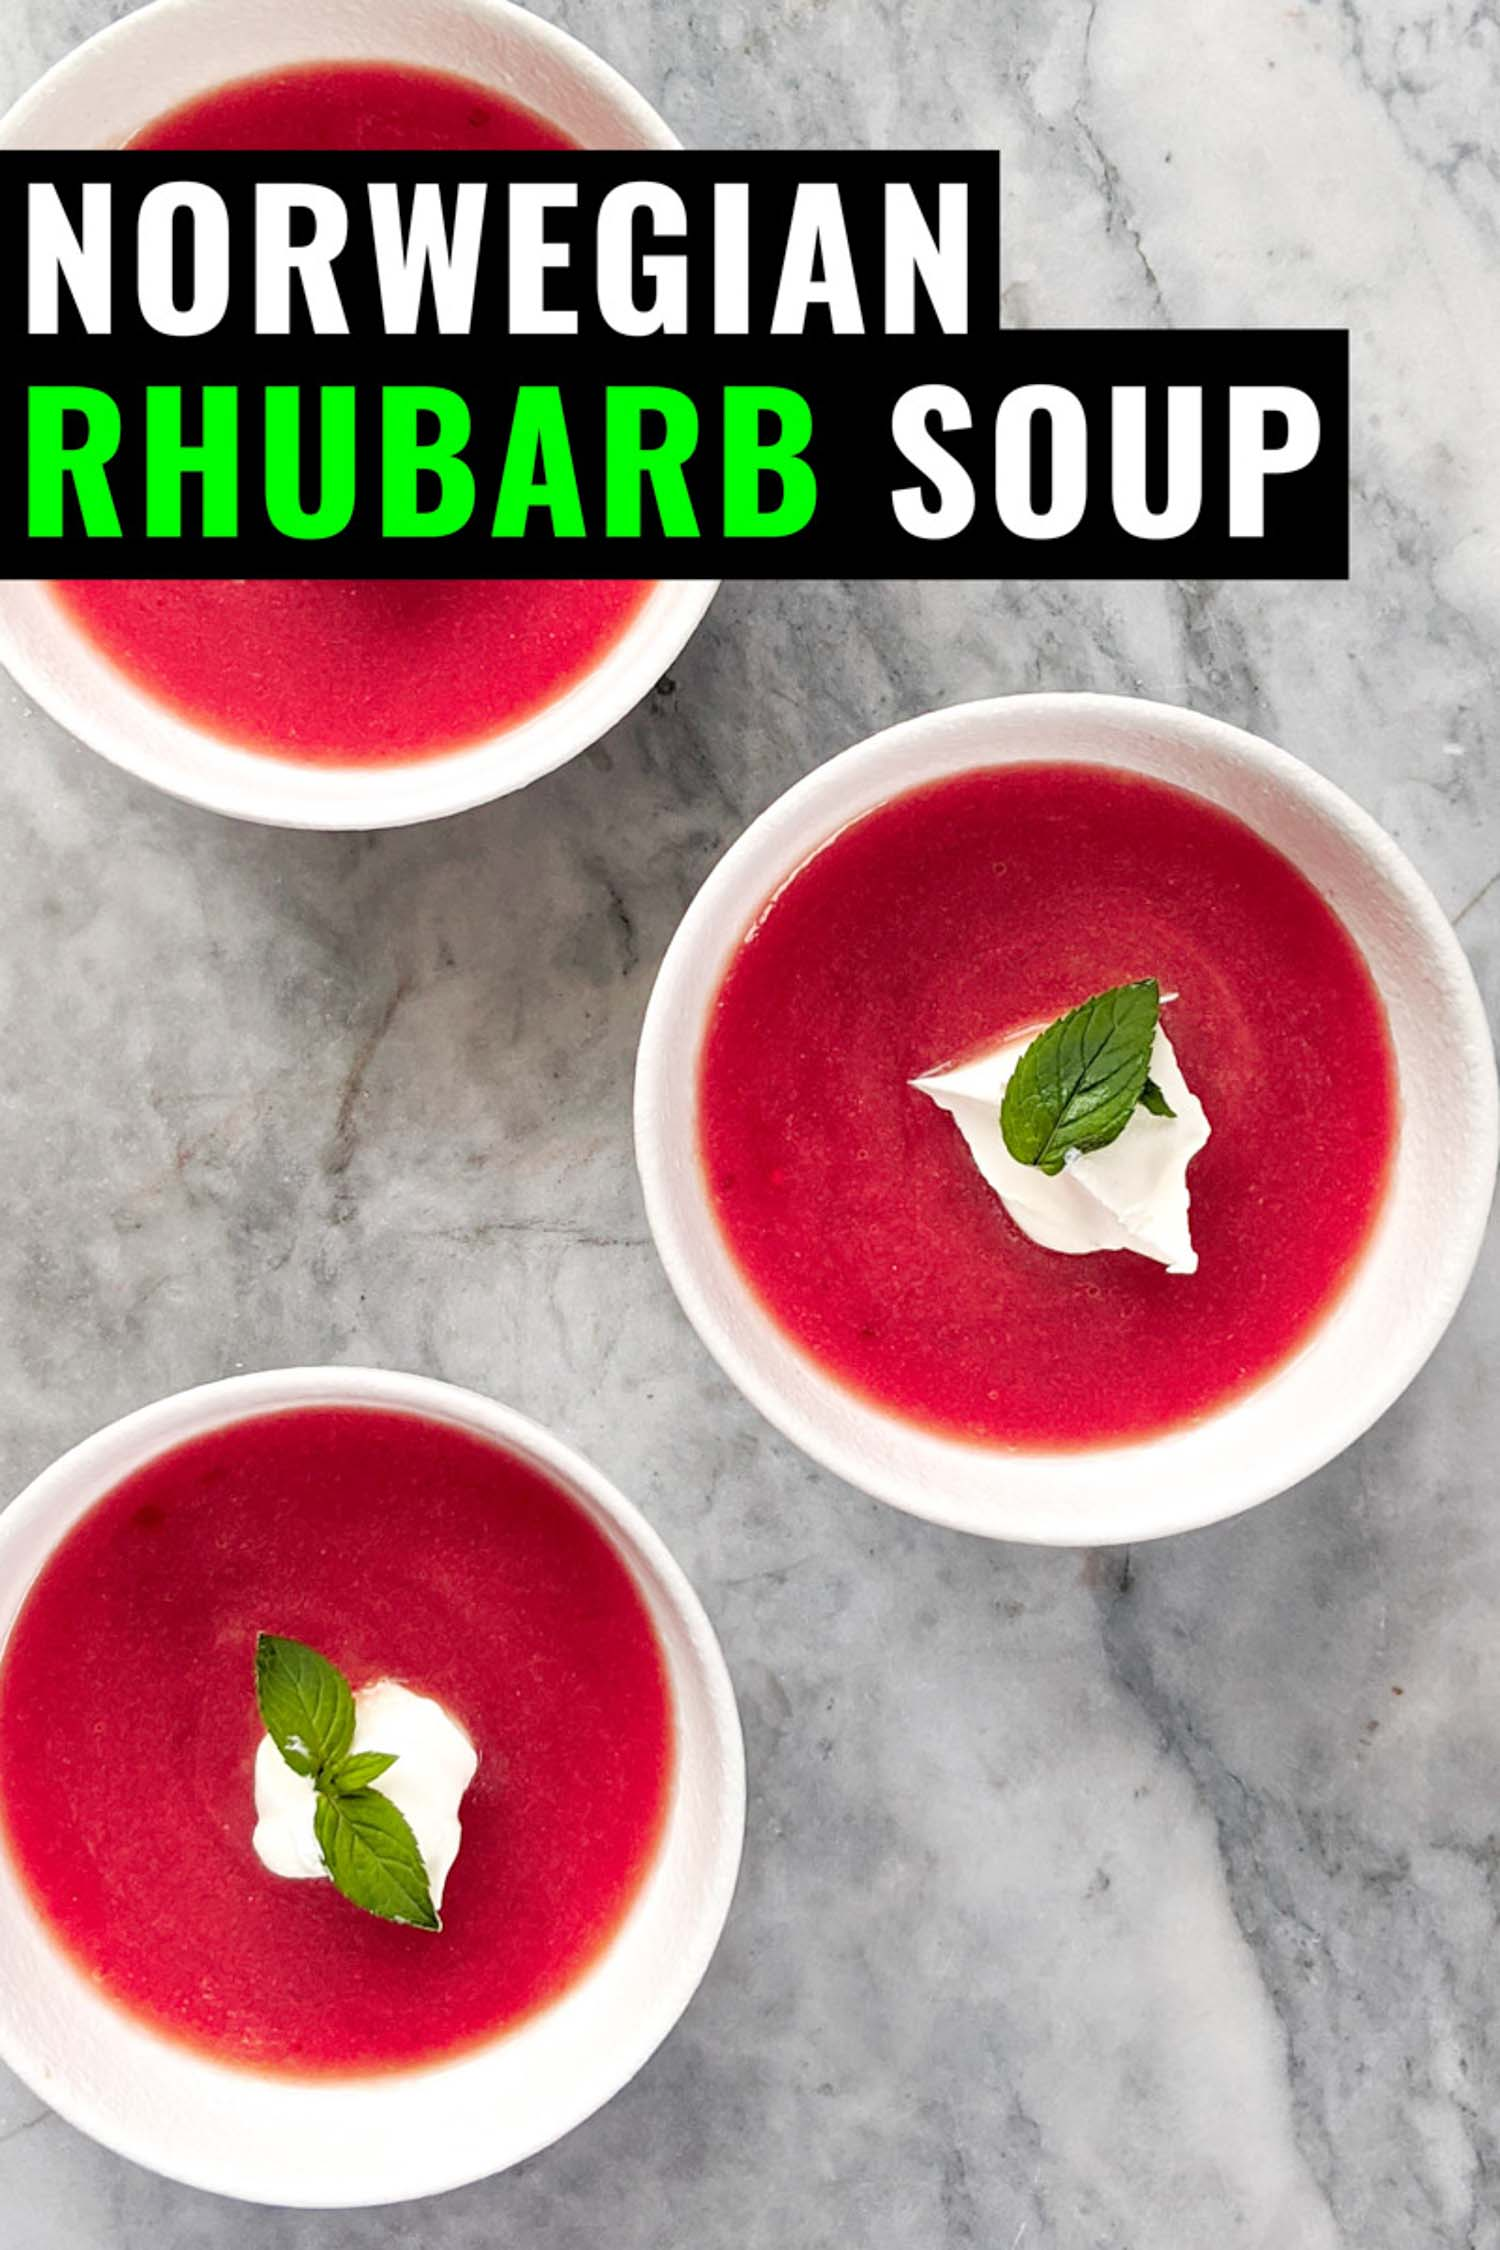 Cold rhubarb soup topped with whipped cream and mint in three white bowls on a grey marble background with text norwegian rhubarb soup